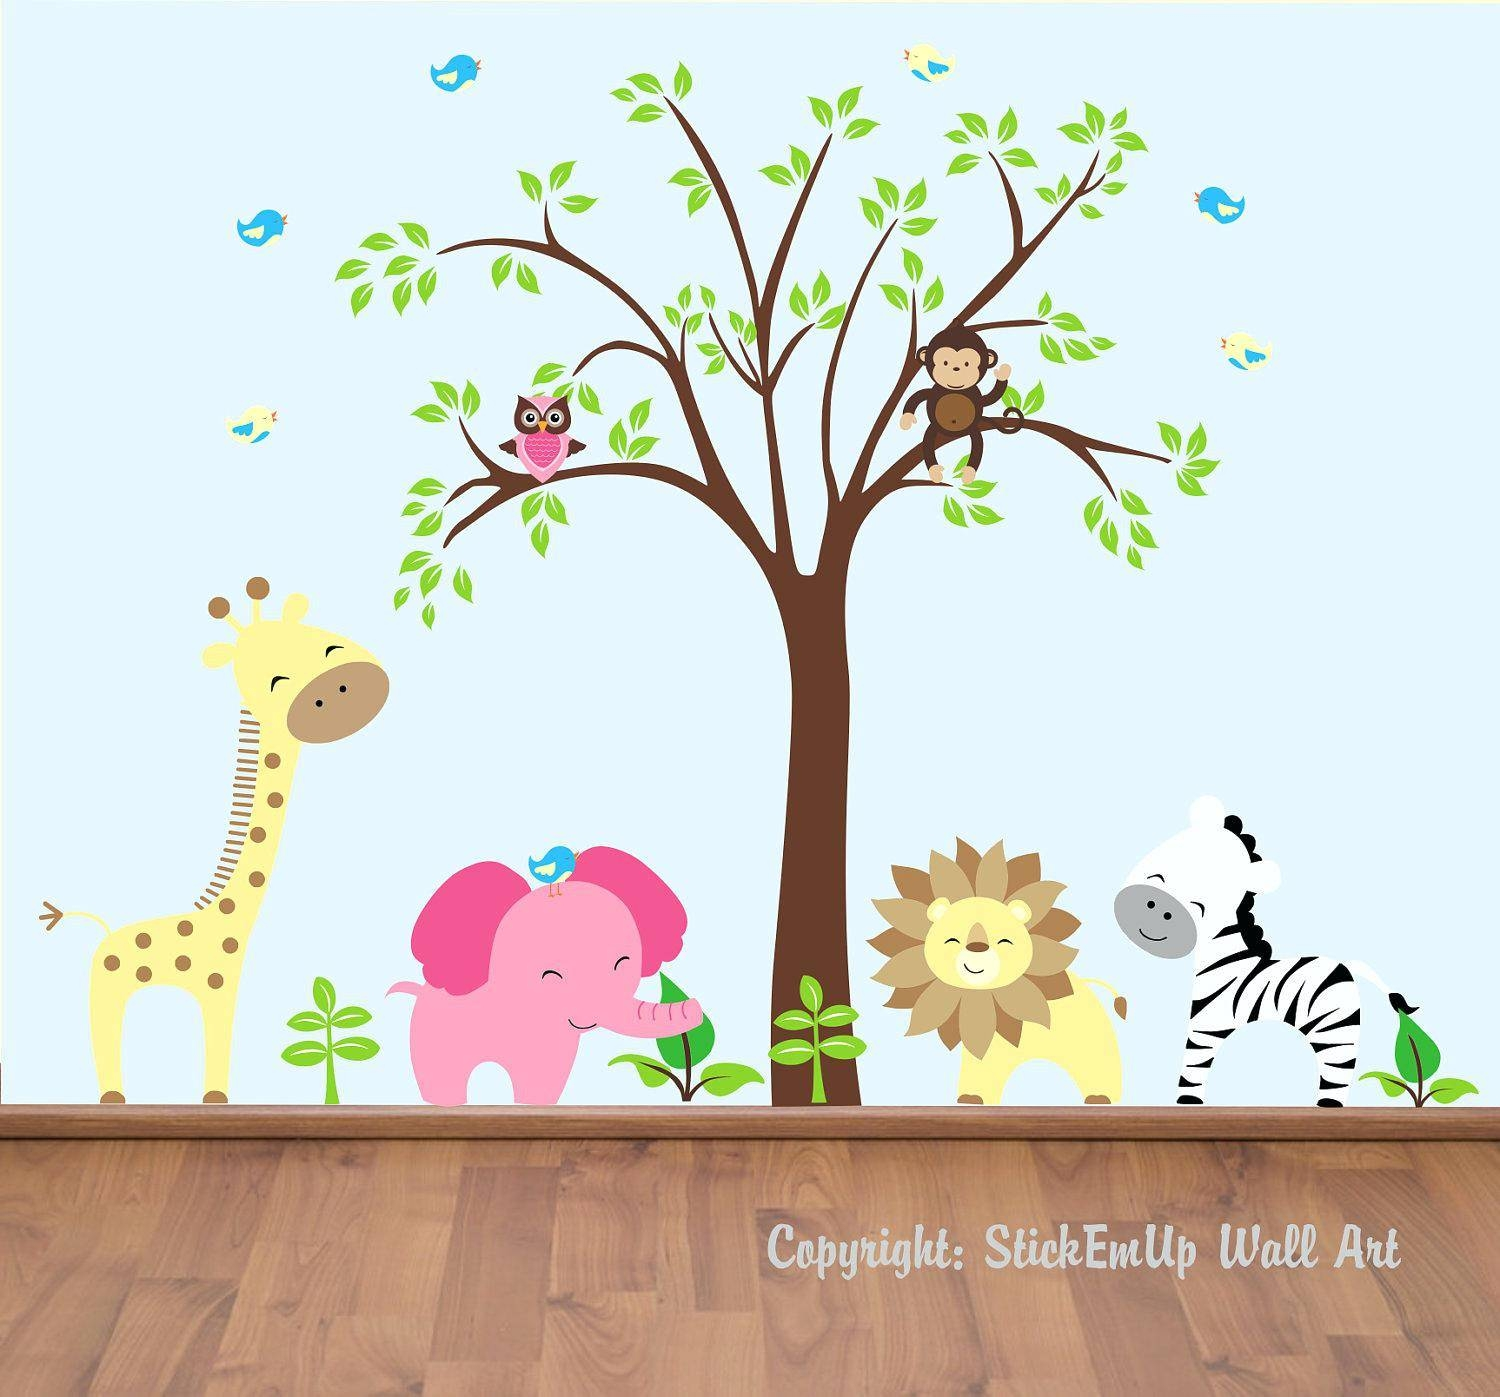 Wall Decals Children Wall Decals For Nursery Kids Children Wall Regarding 2018 Children Wall Art (View 13 of 15)